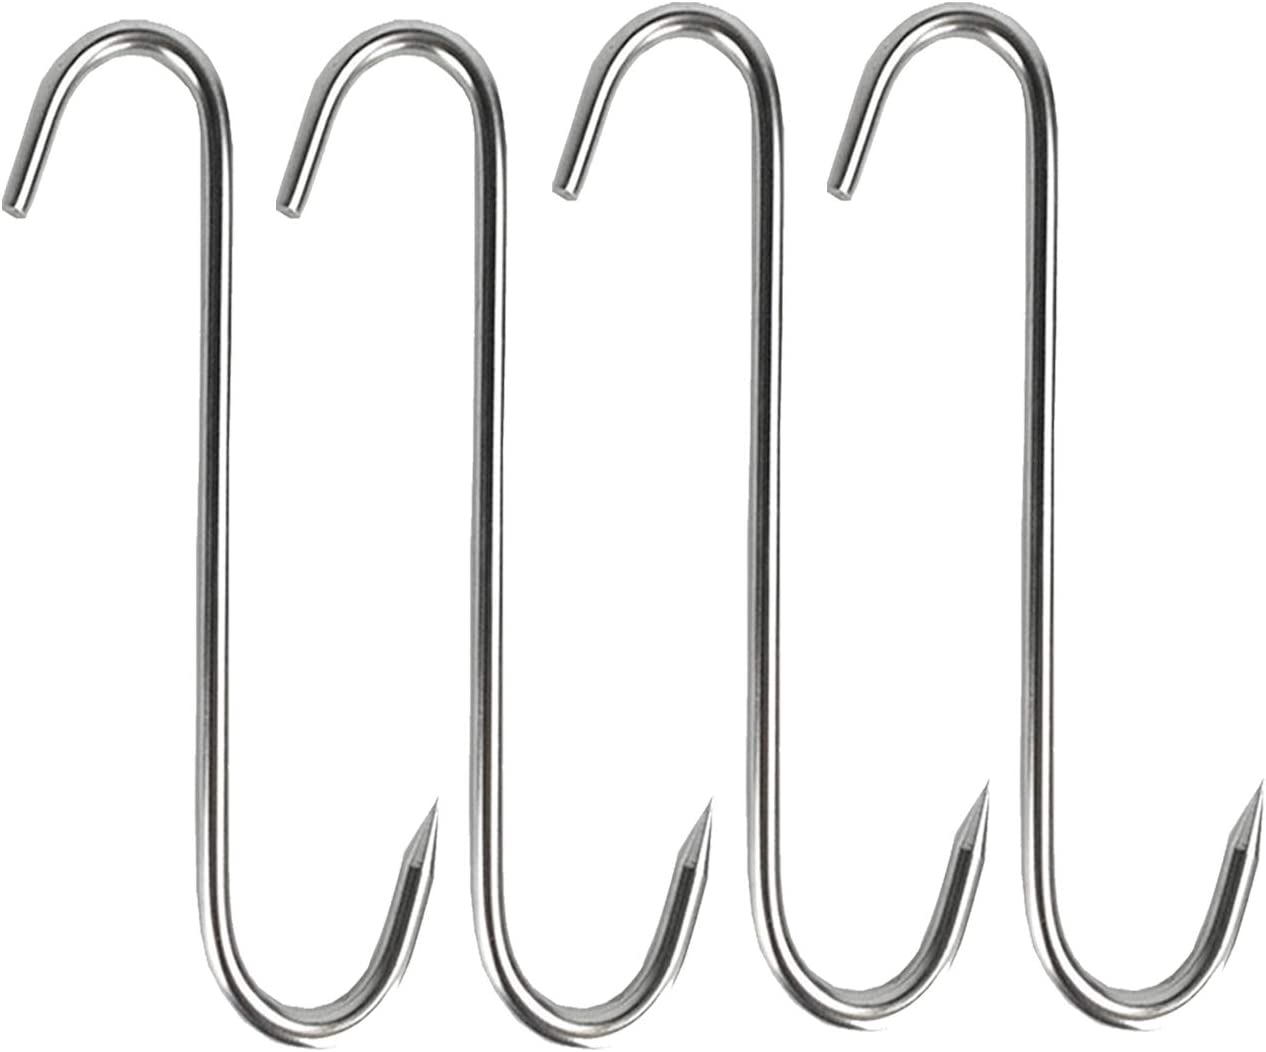 TinaWood 4 PCS 5.1 Inch Meat Hooks S-Hook Stainless Steel Meat Processing Butcher Hook Pot Hooks for Bacon Hams Meat Processing Butcher Hook Hanging Drying BBQ Grill Cooking